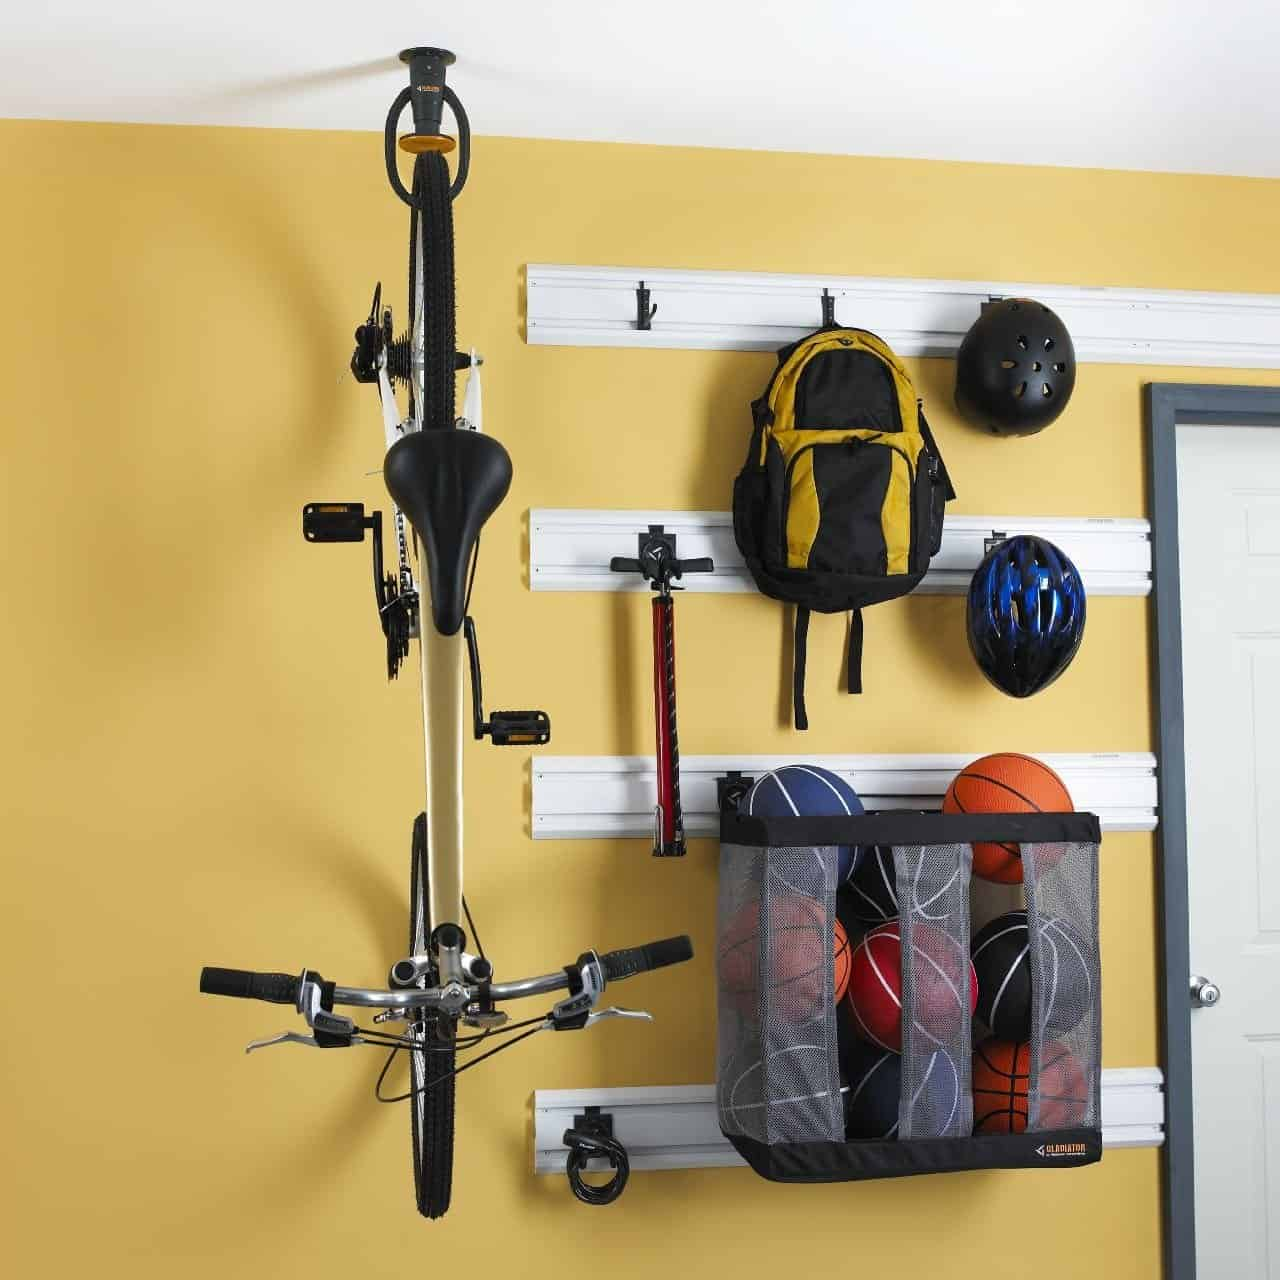 Gladiator Claw Bike Storage